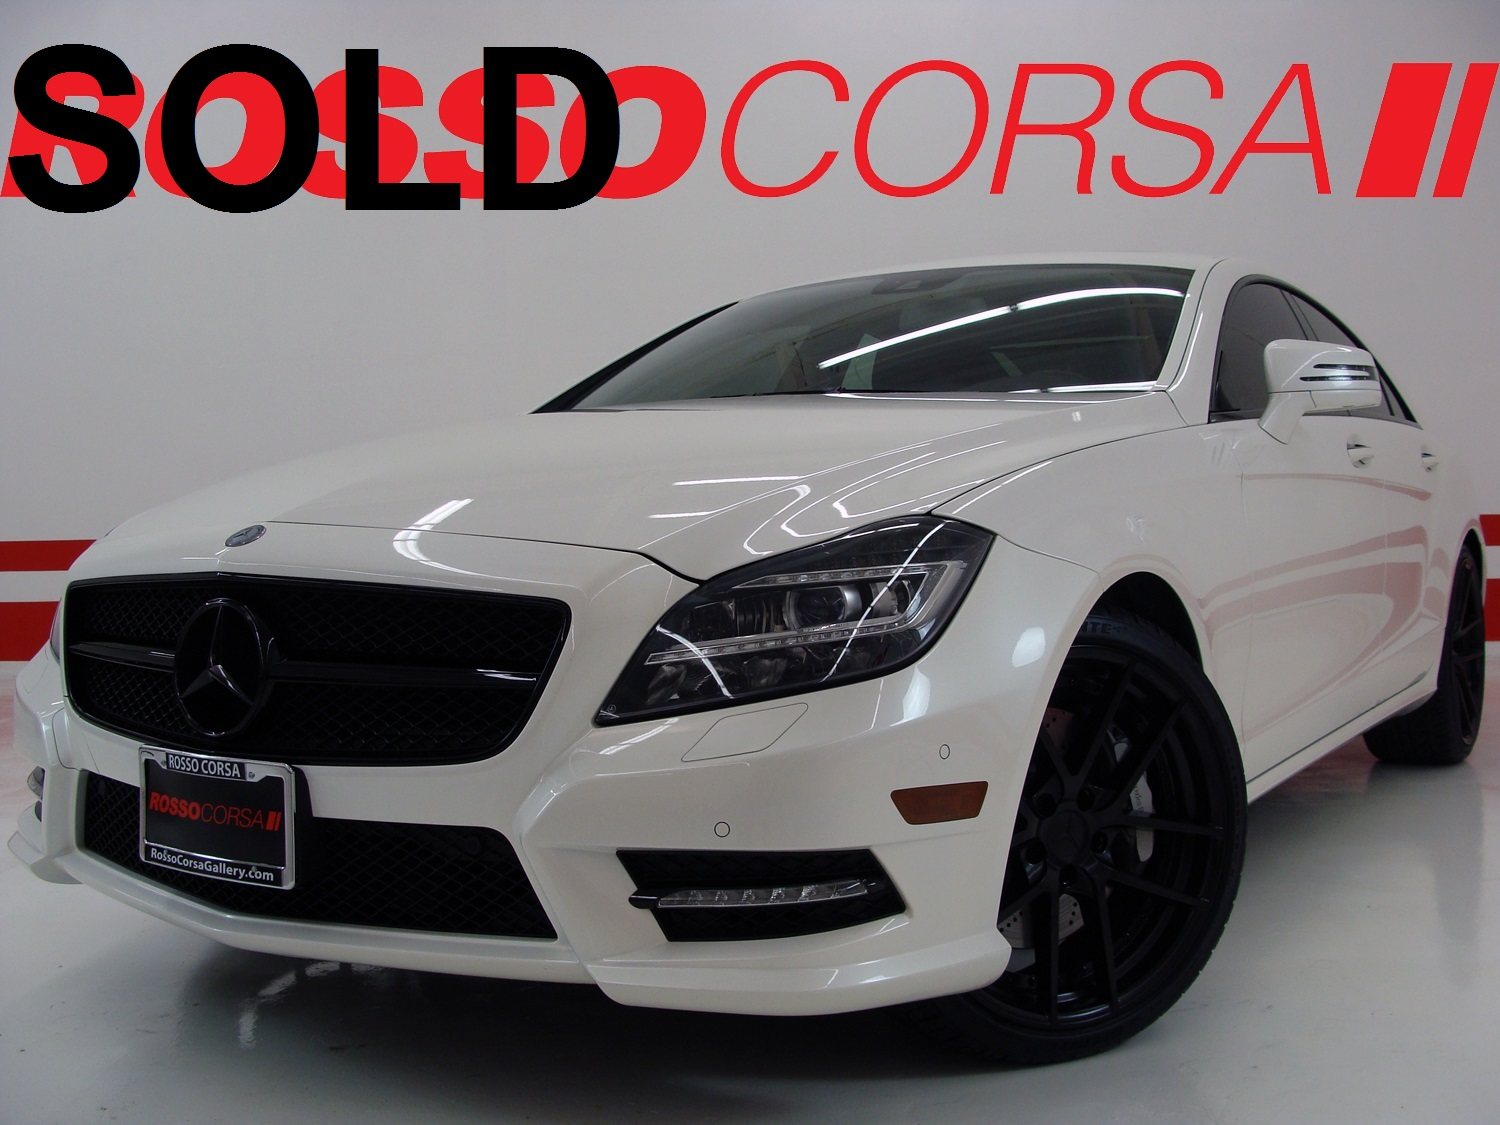 2013 Mercedes-Benz CLS550 CUSTOM ($81K MSRP)